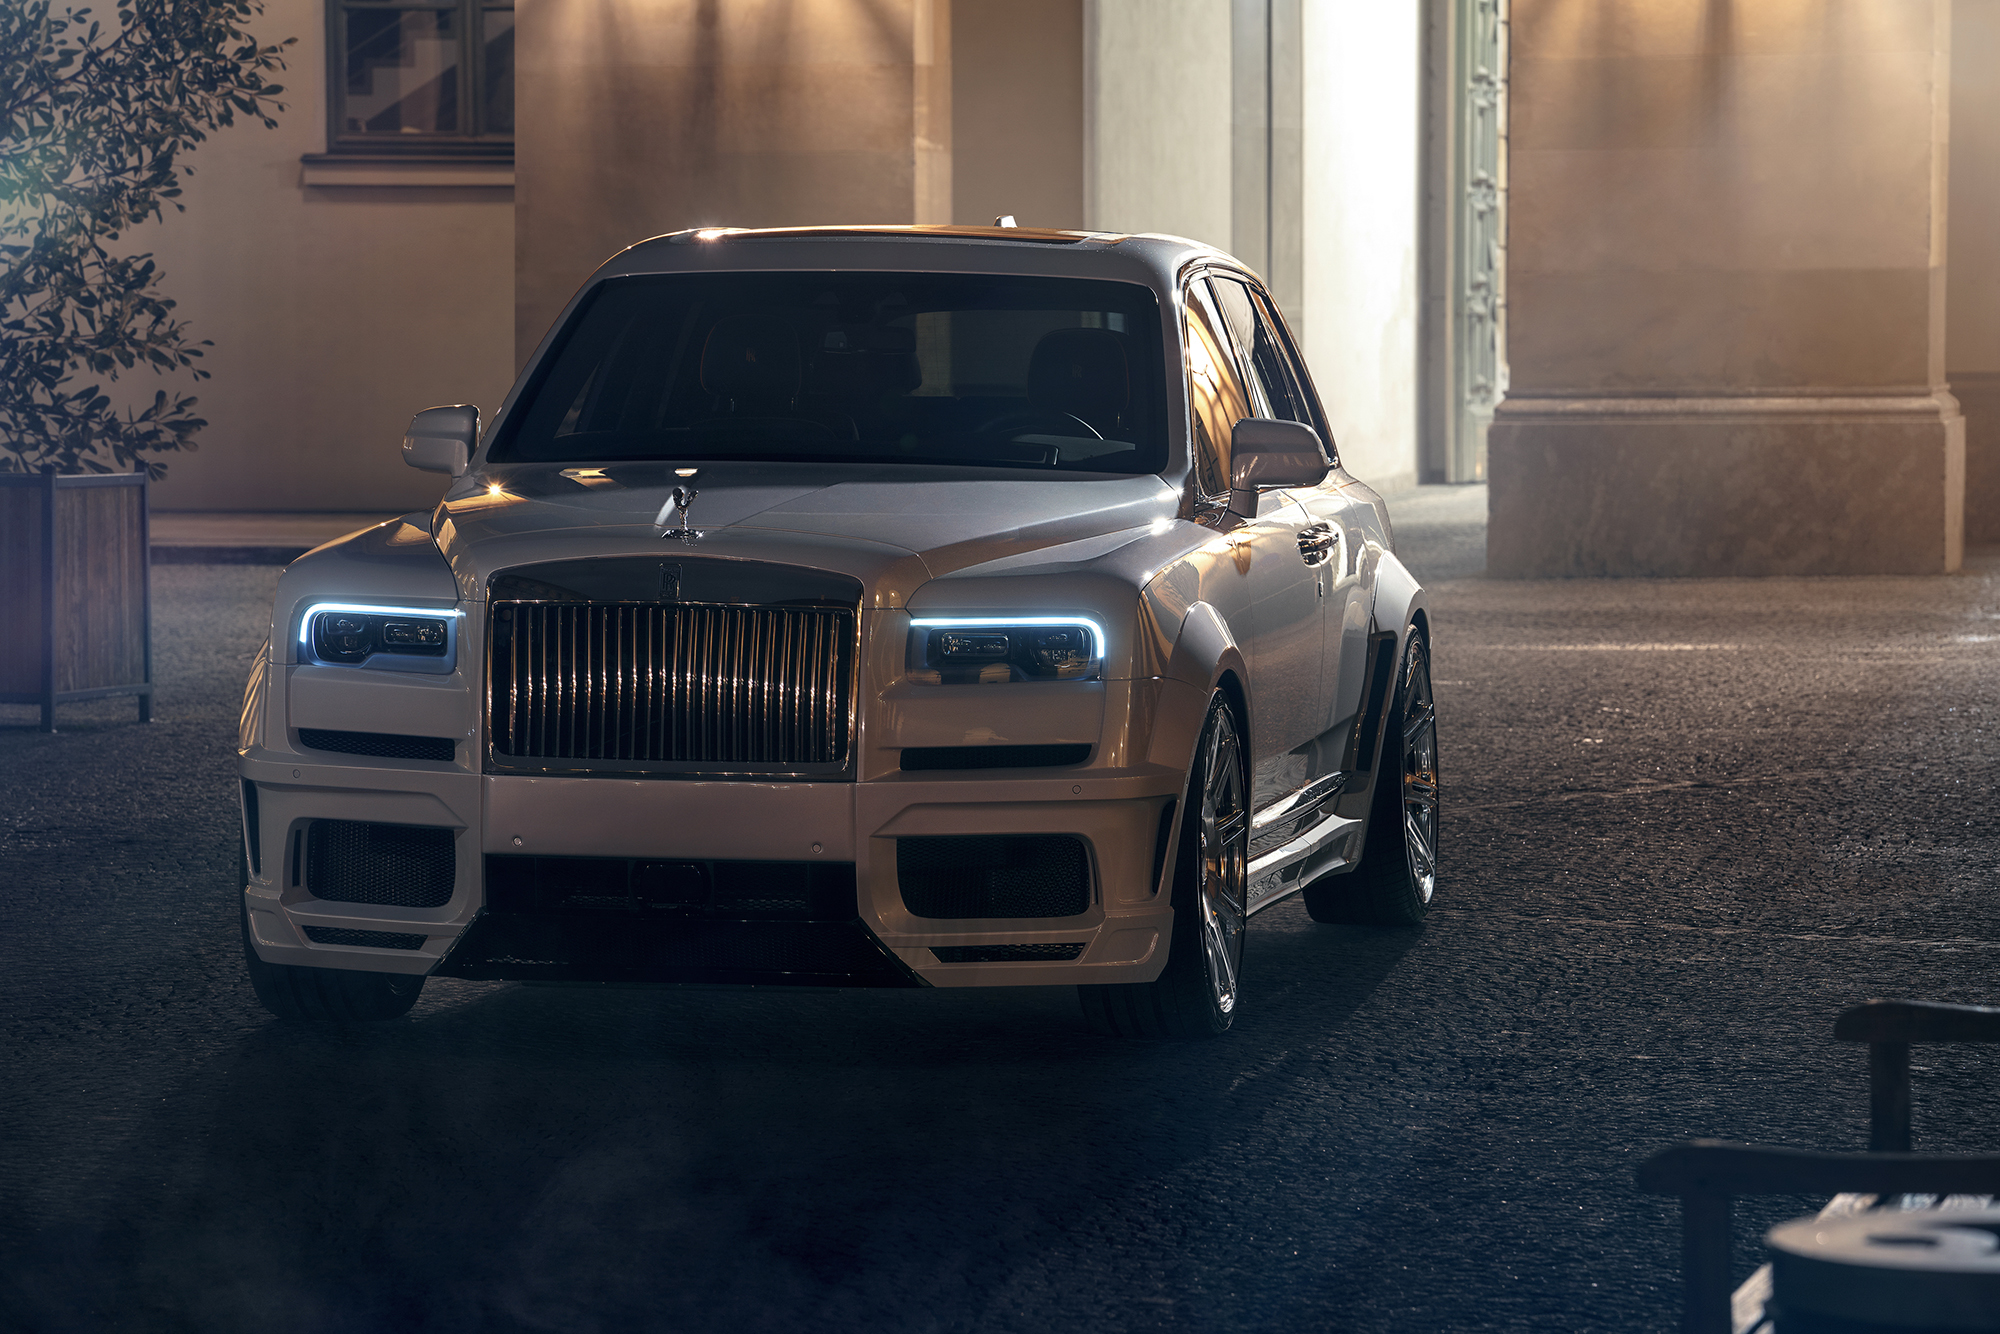 Rolls-Royce Cullinan with Spofec Overdose Body kit